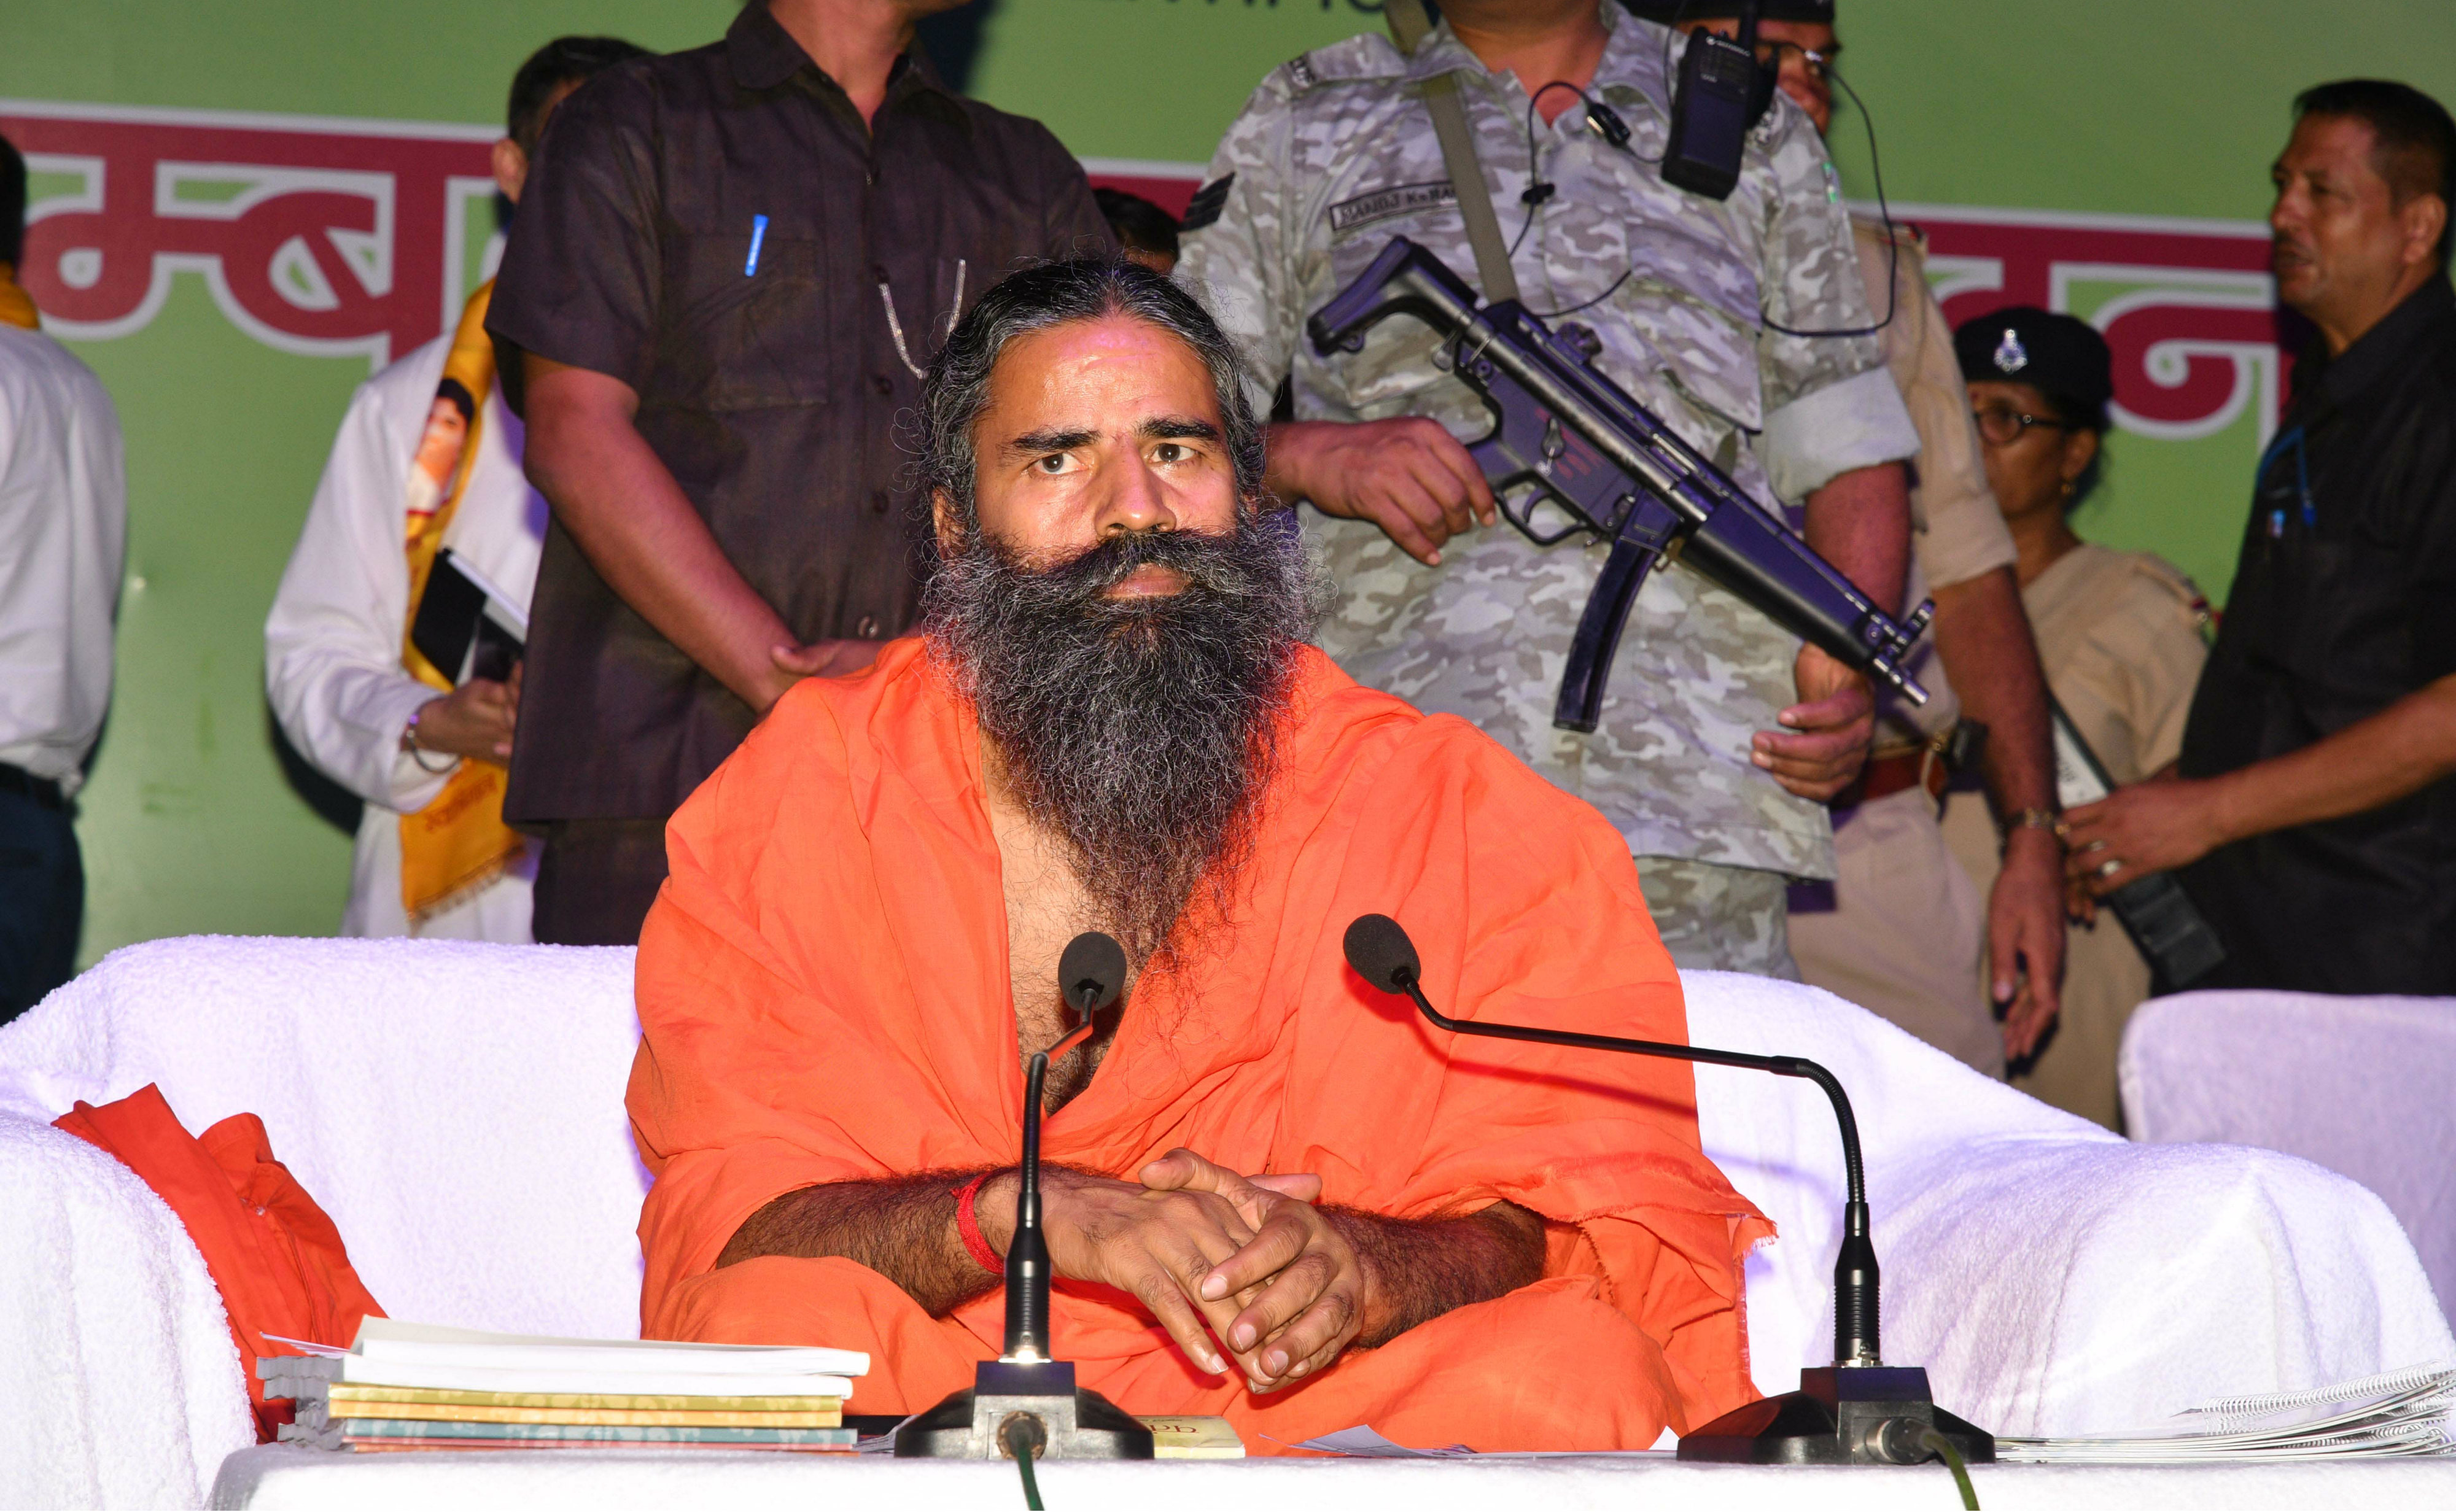 Ramdev said he wants to make a spiritual India and world, not a Hindu India or communal India.